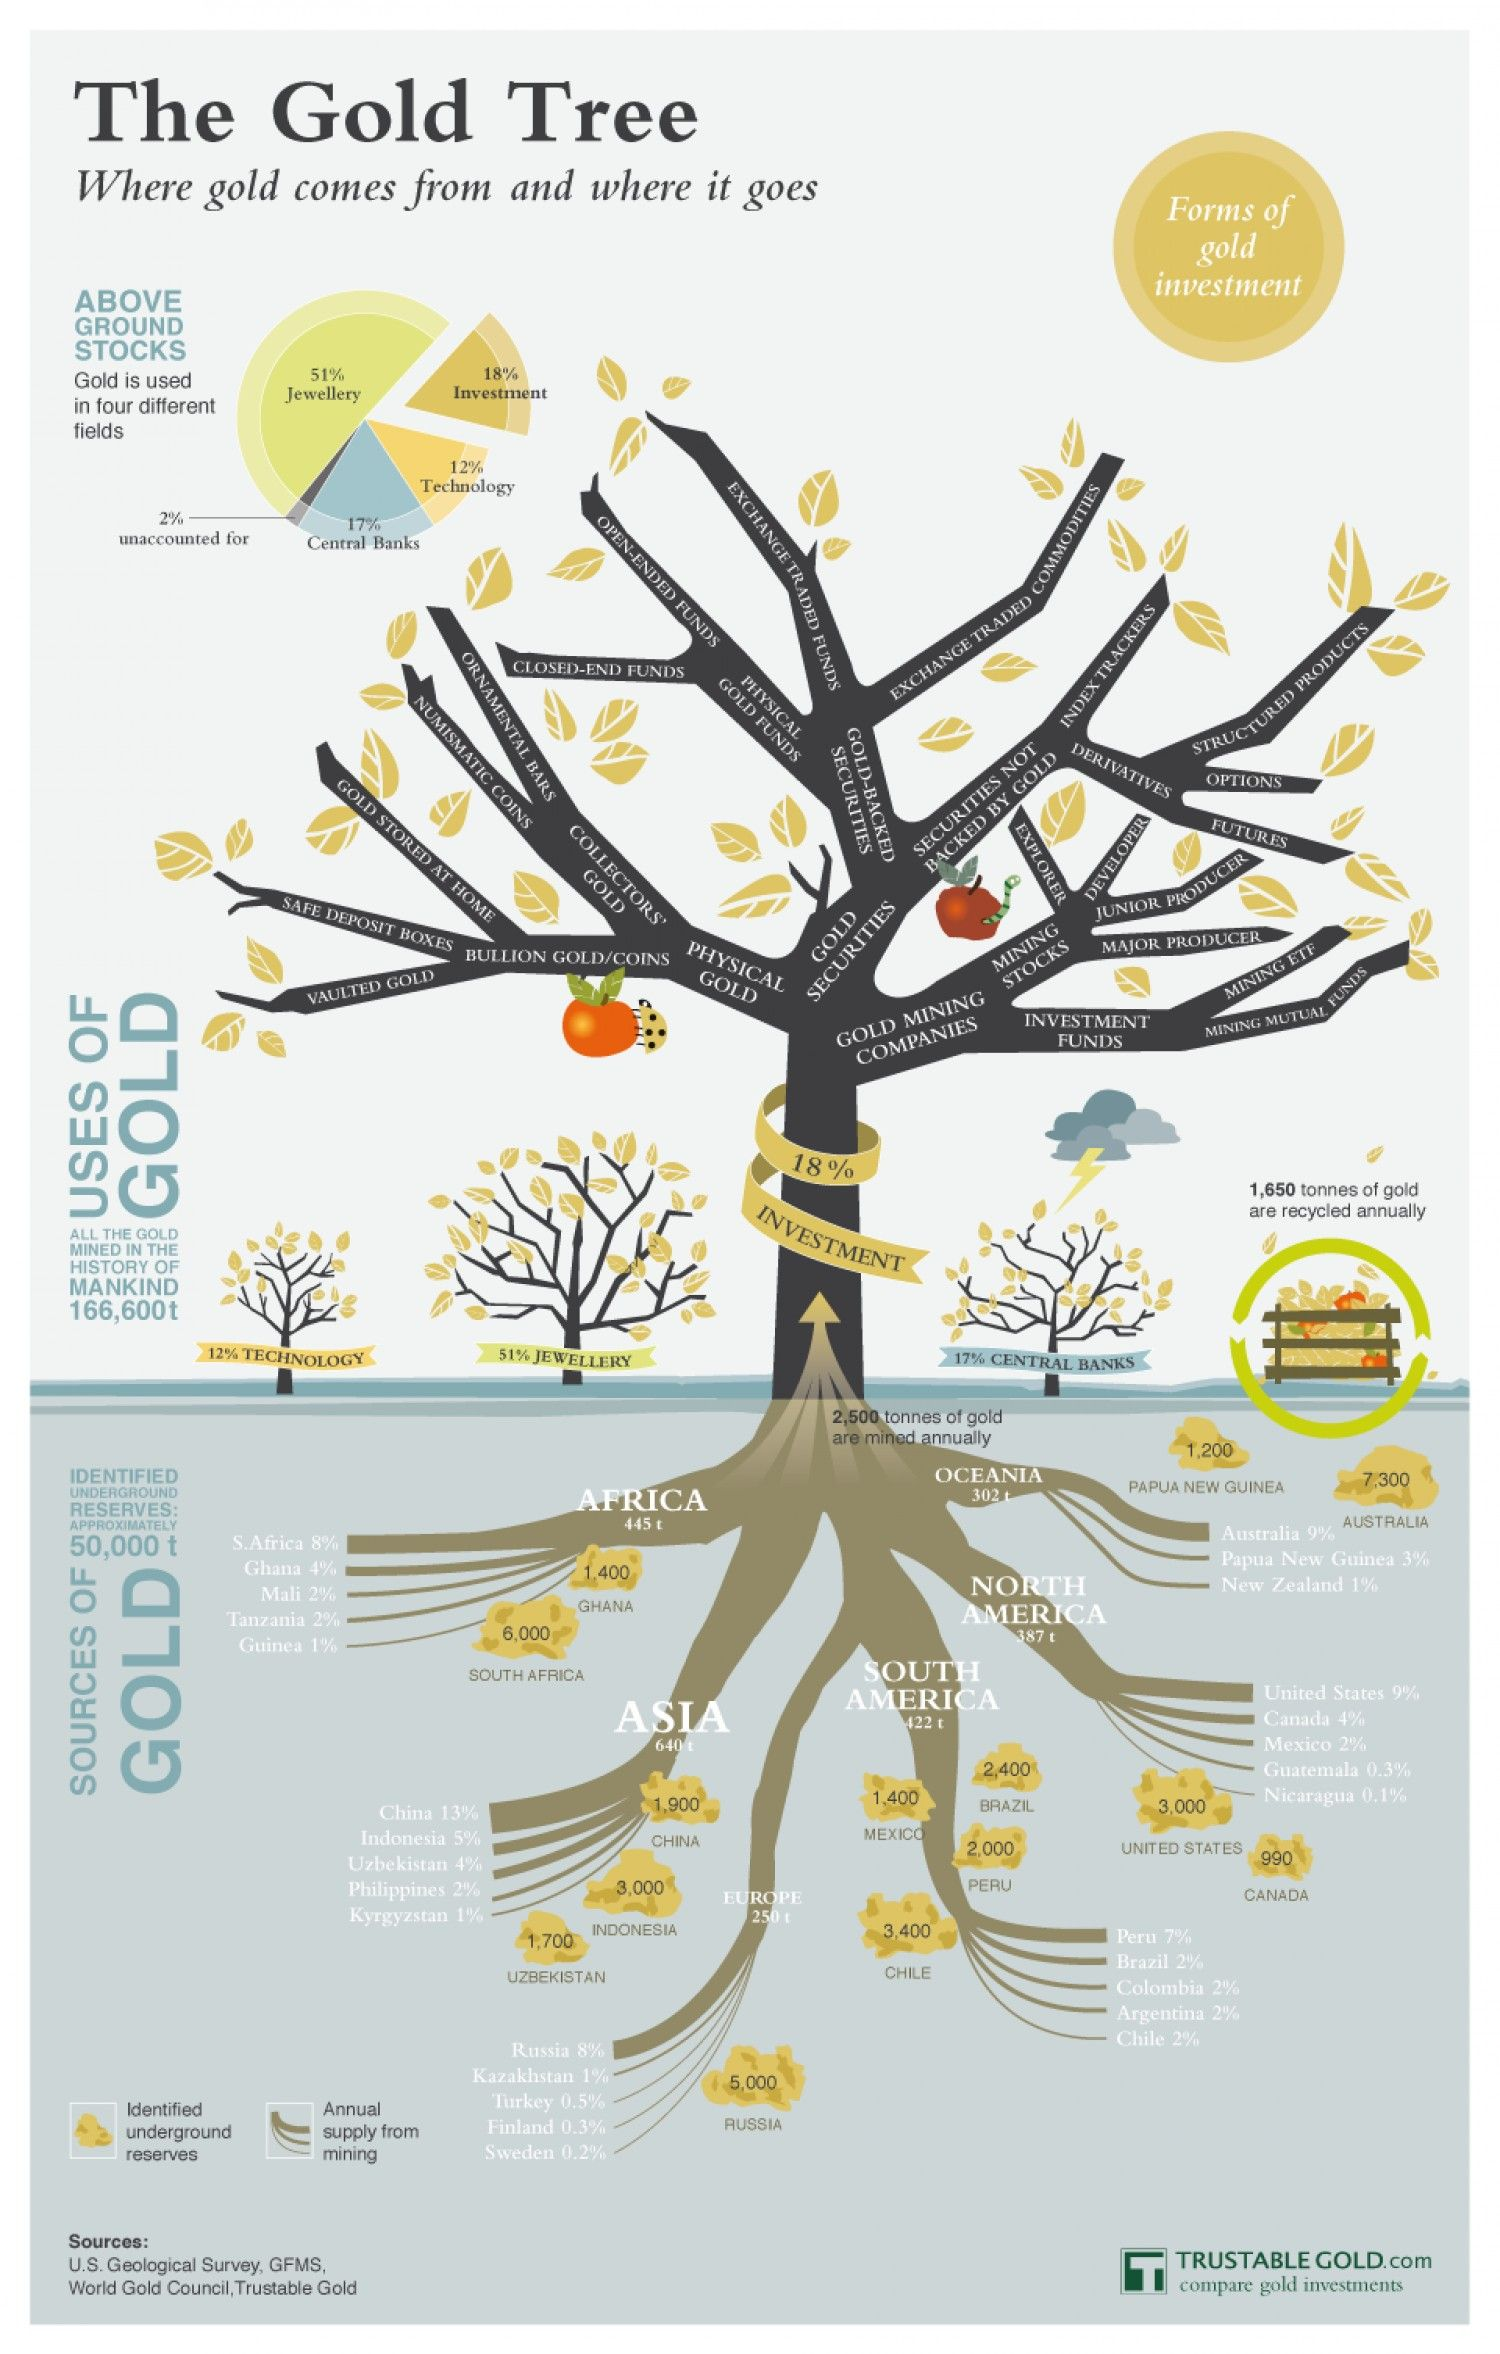 The gold tree forms of gold investment uses and sources of gold the gold tree forms of gold investment uses and sources of gold infographic ccuart Choice Image